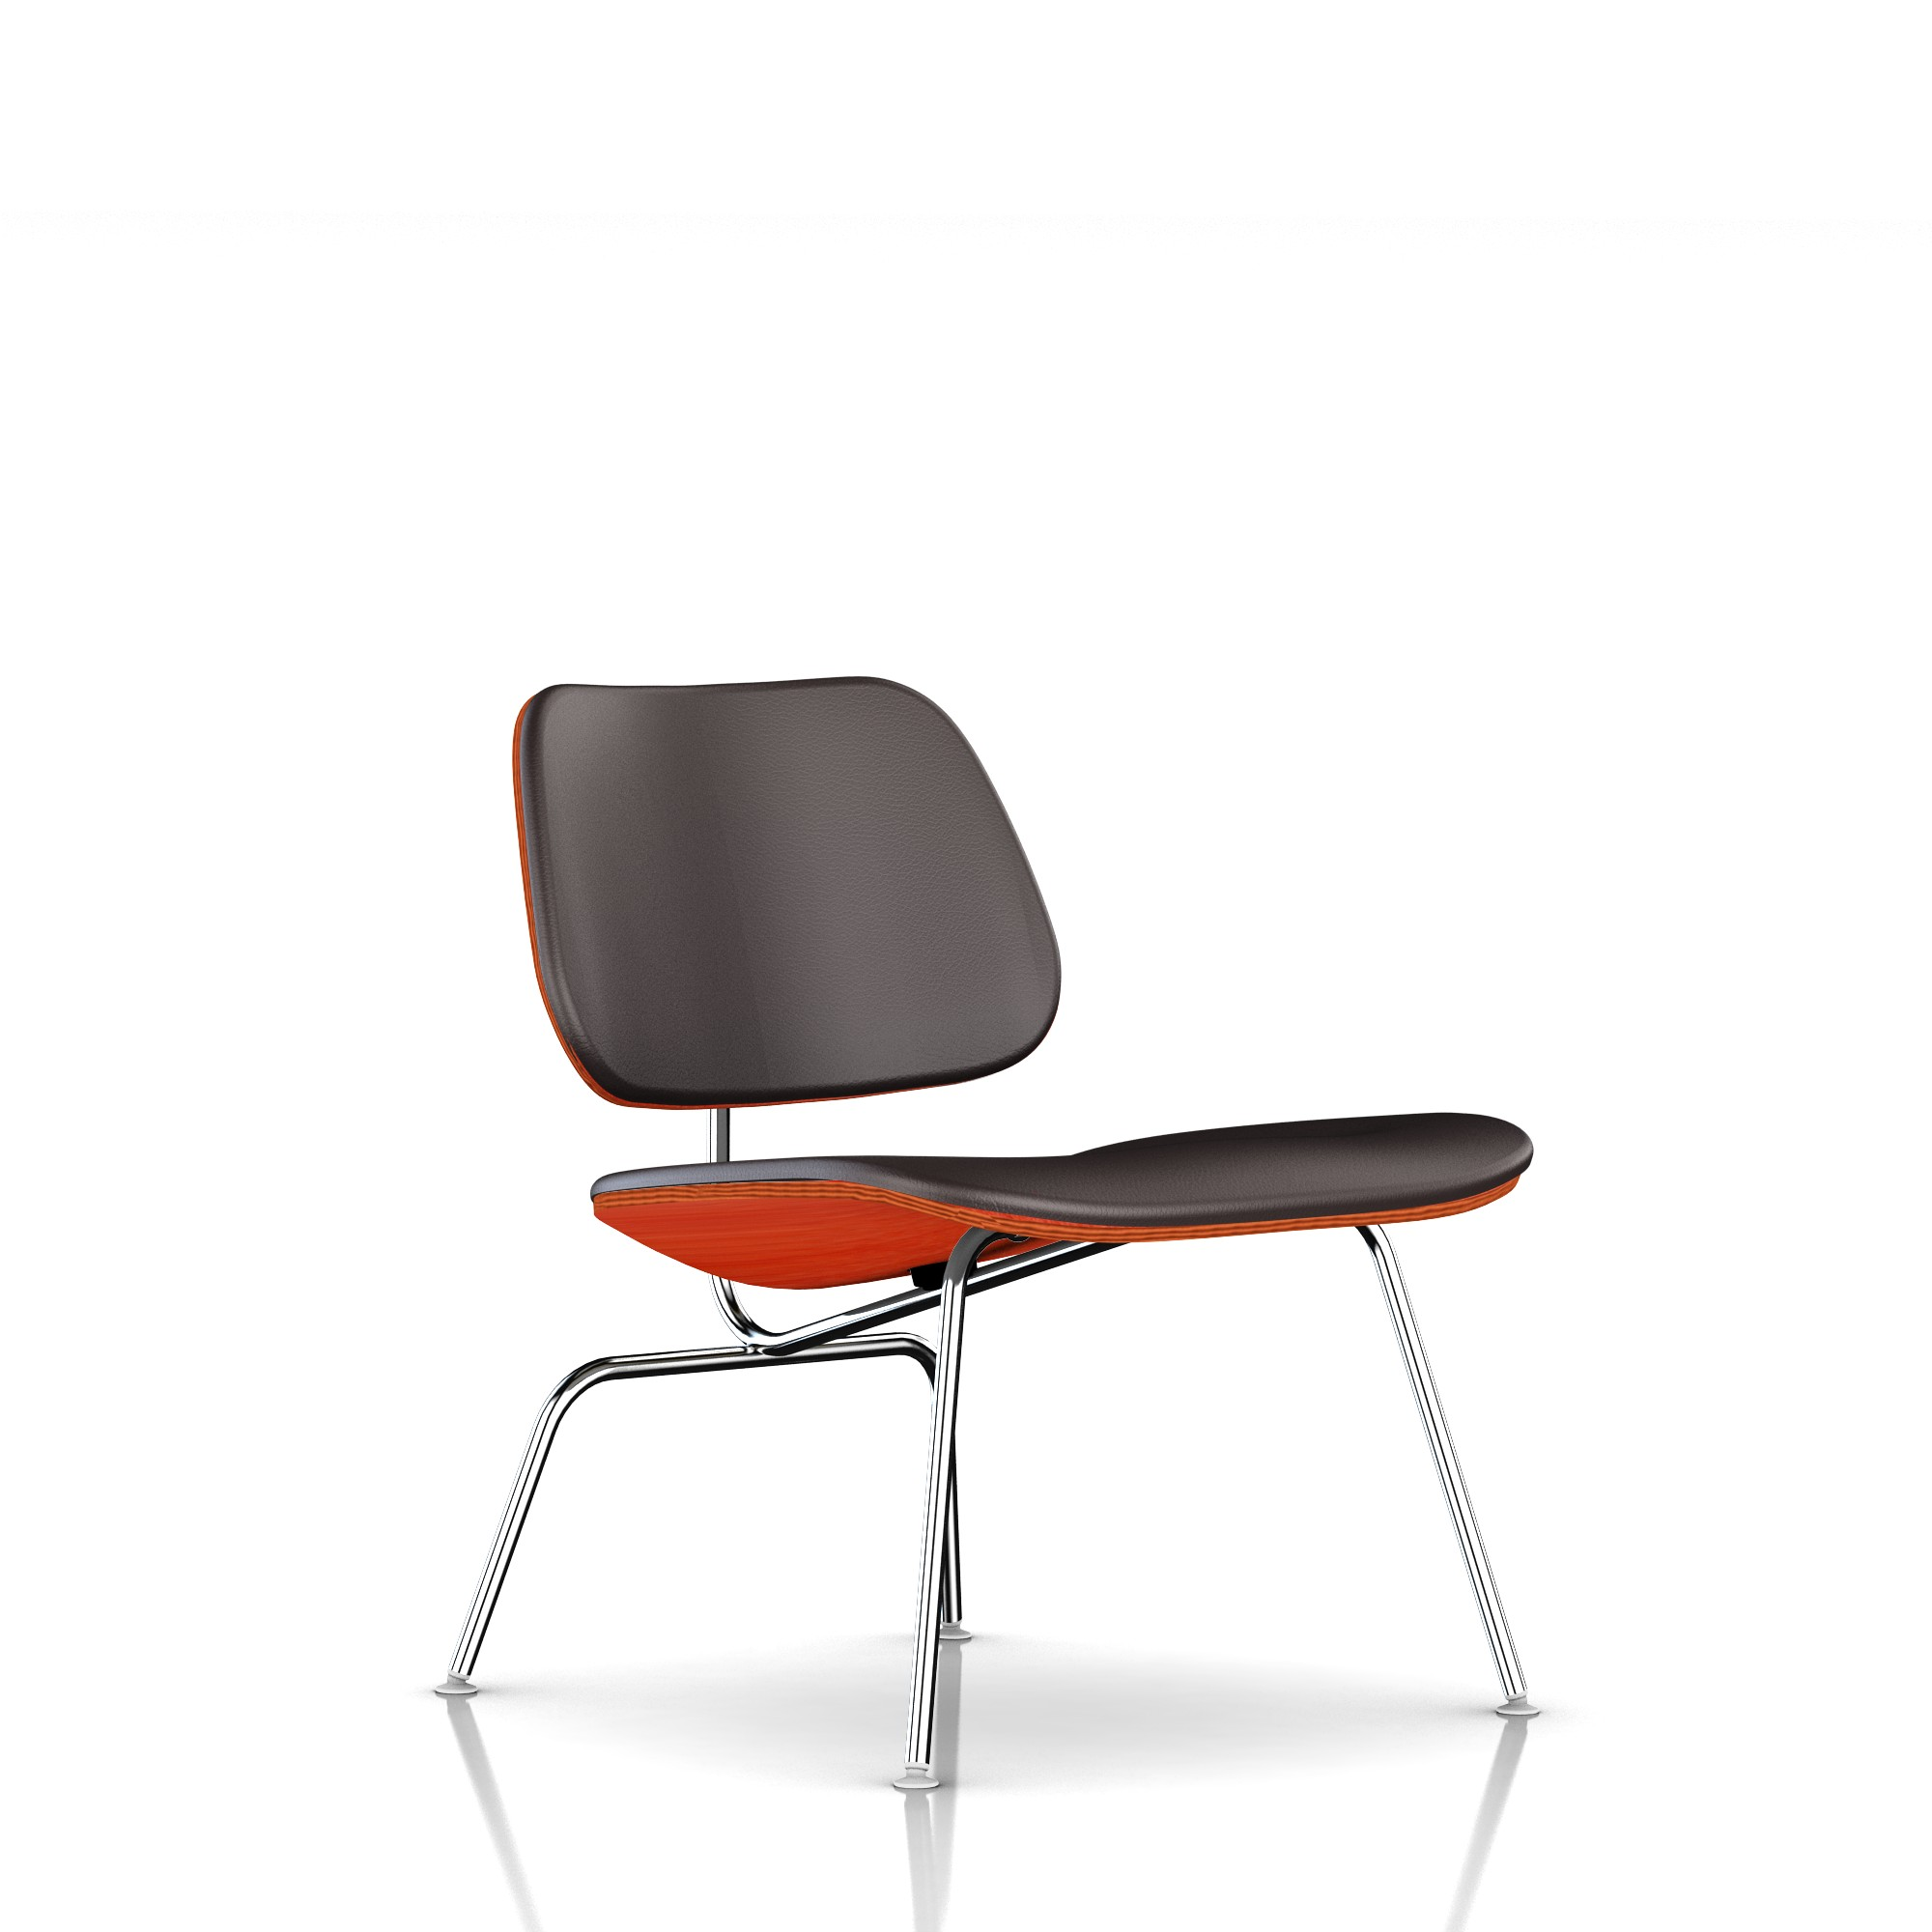 Eames Molded Plywood Lounge Chair in Espresso MCL Leather by Herman Miller